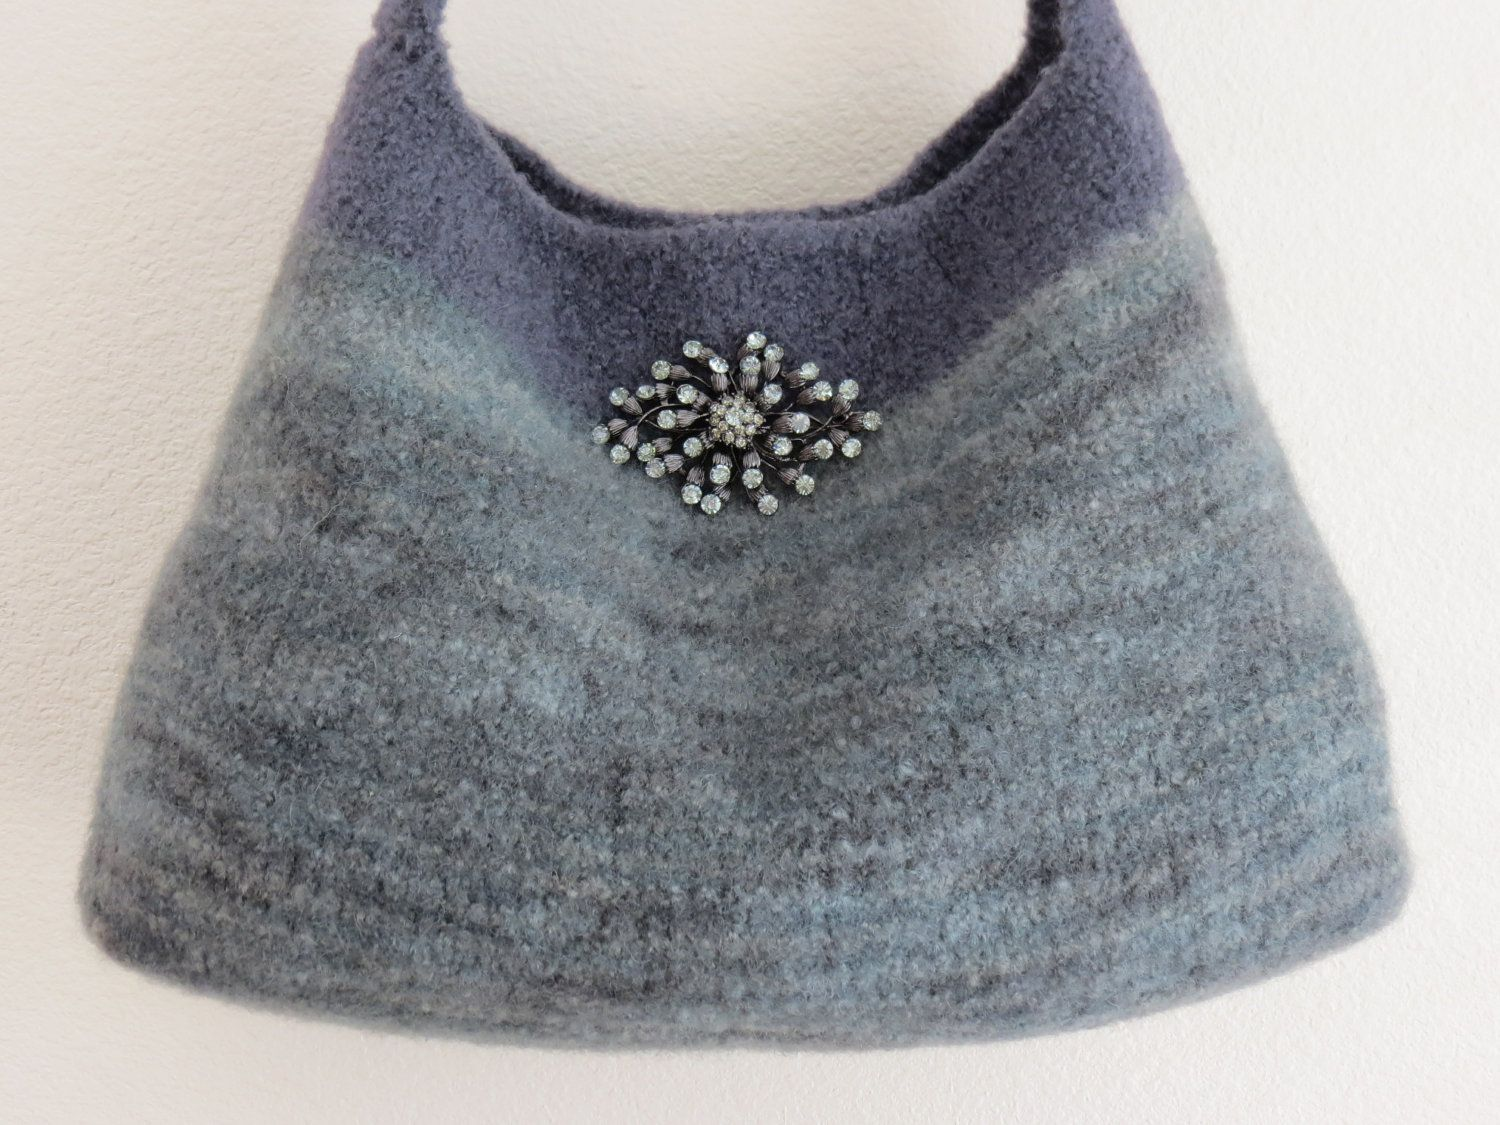 Knitted Purse Patterns Magnificent Design Inspiration